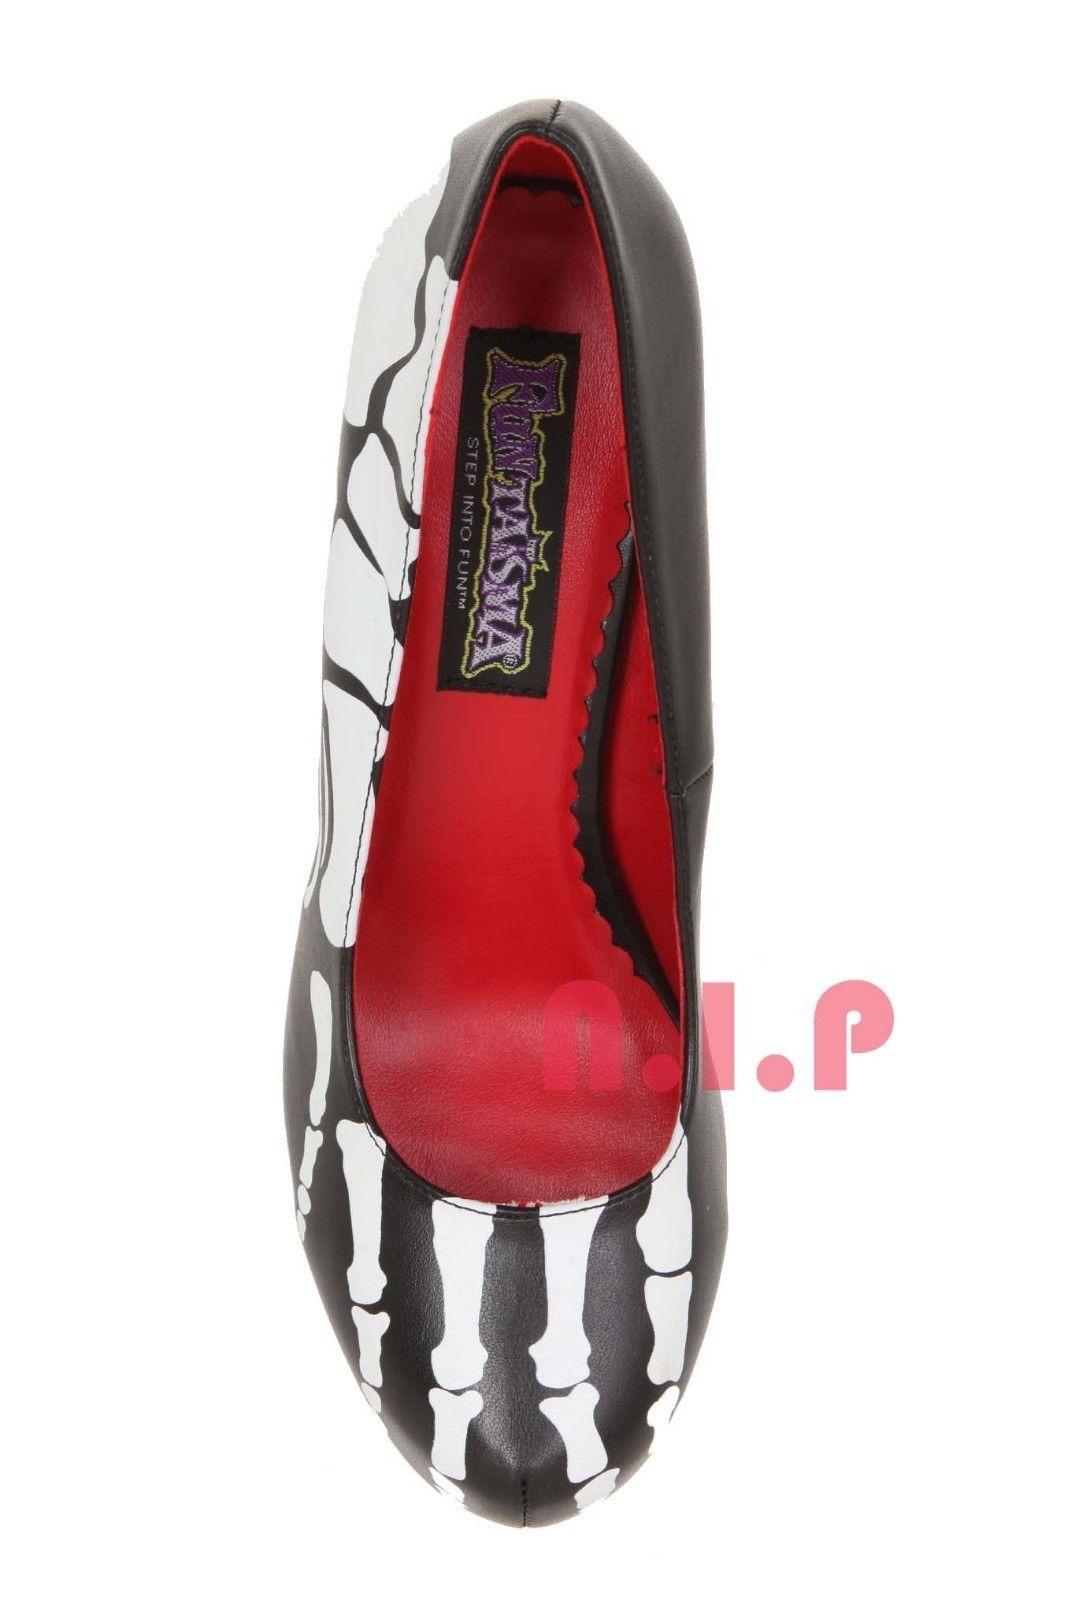 FUNTASMA Skeleton Bones Halloween Hot Topic Goth Punk Emo Pumps High Heels Shoes